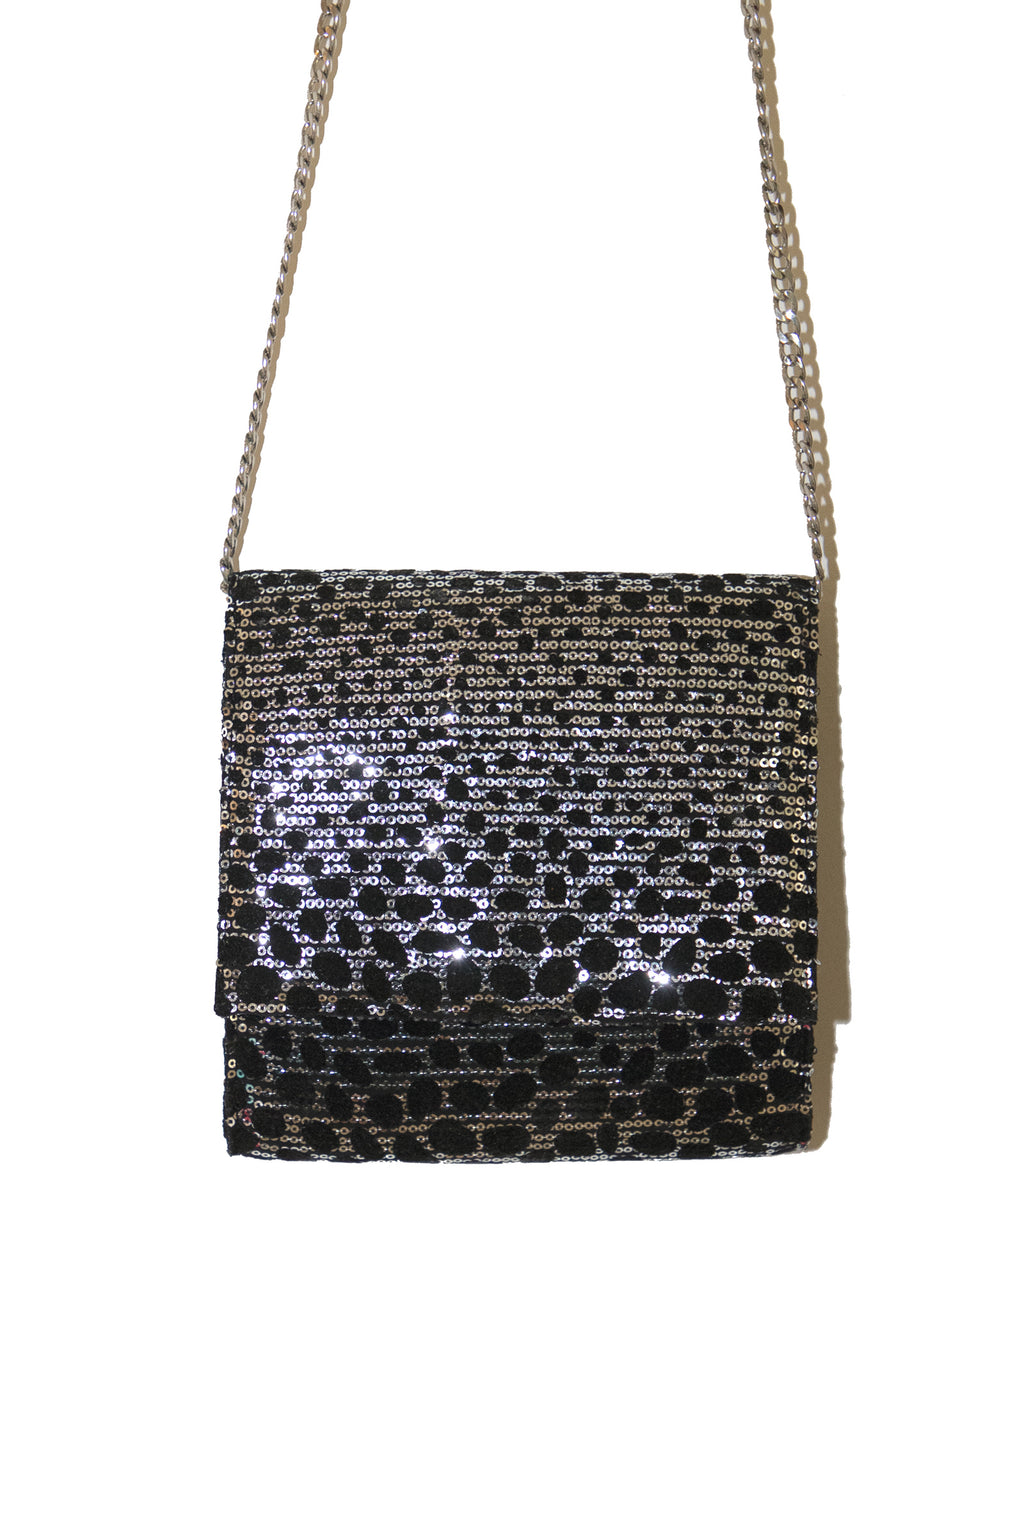 Reptilian Print Sequin Bag